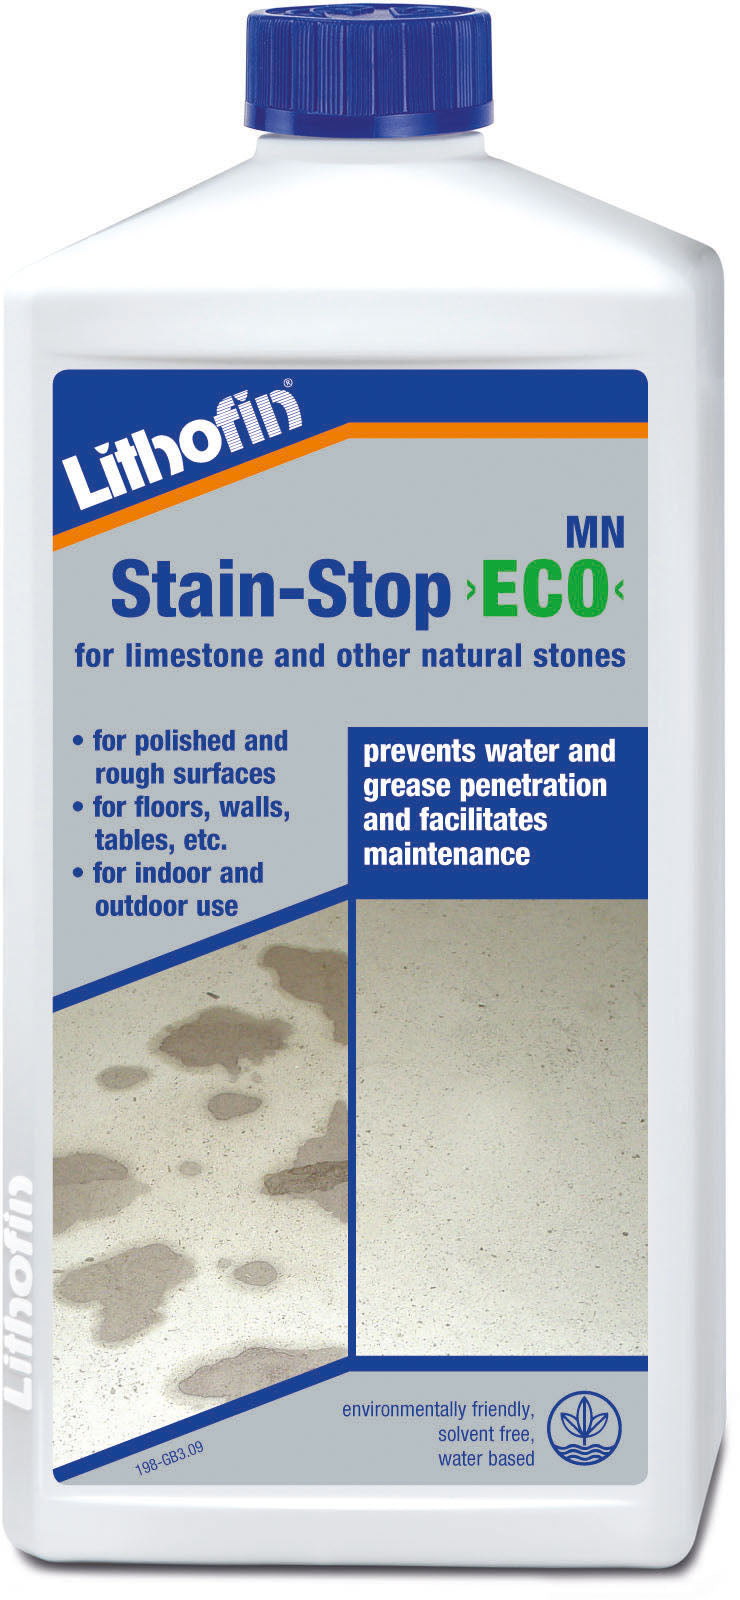 Lithofin stain stop eco for limestone and other natural stones